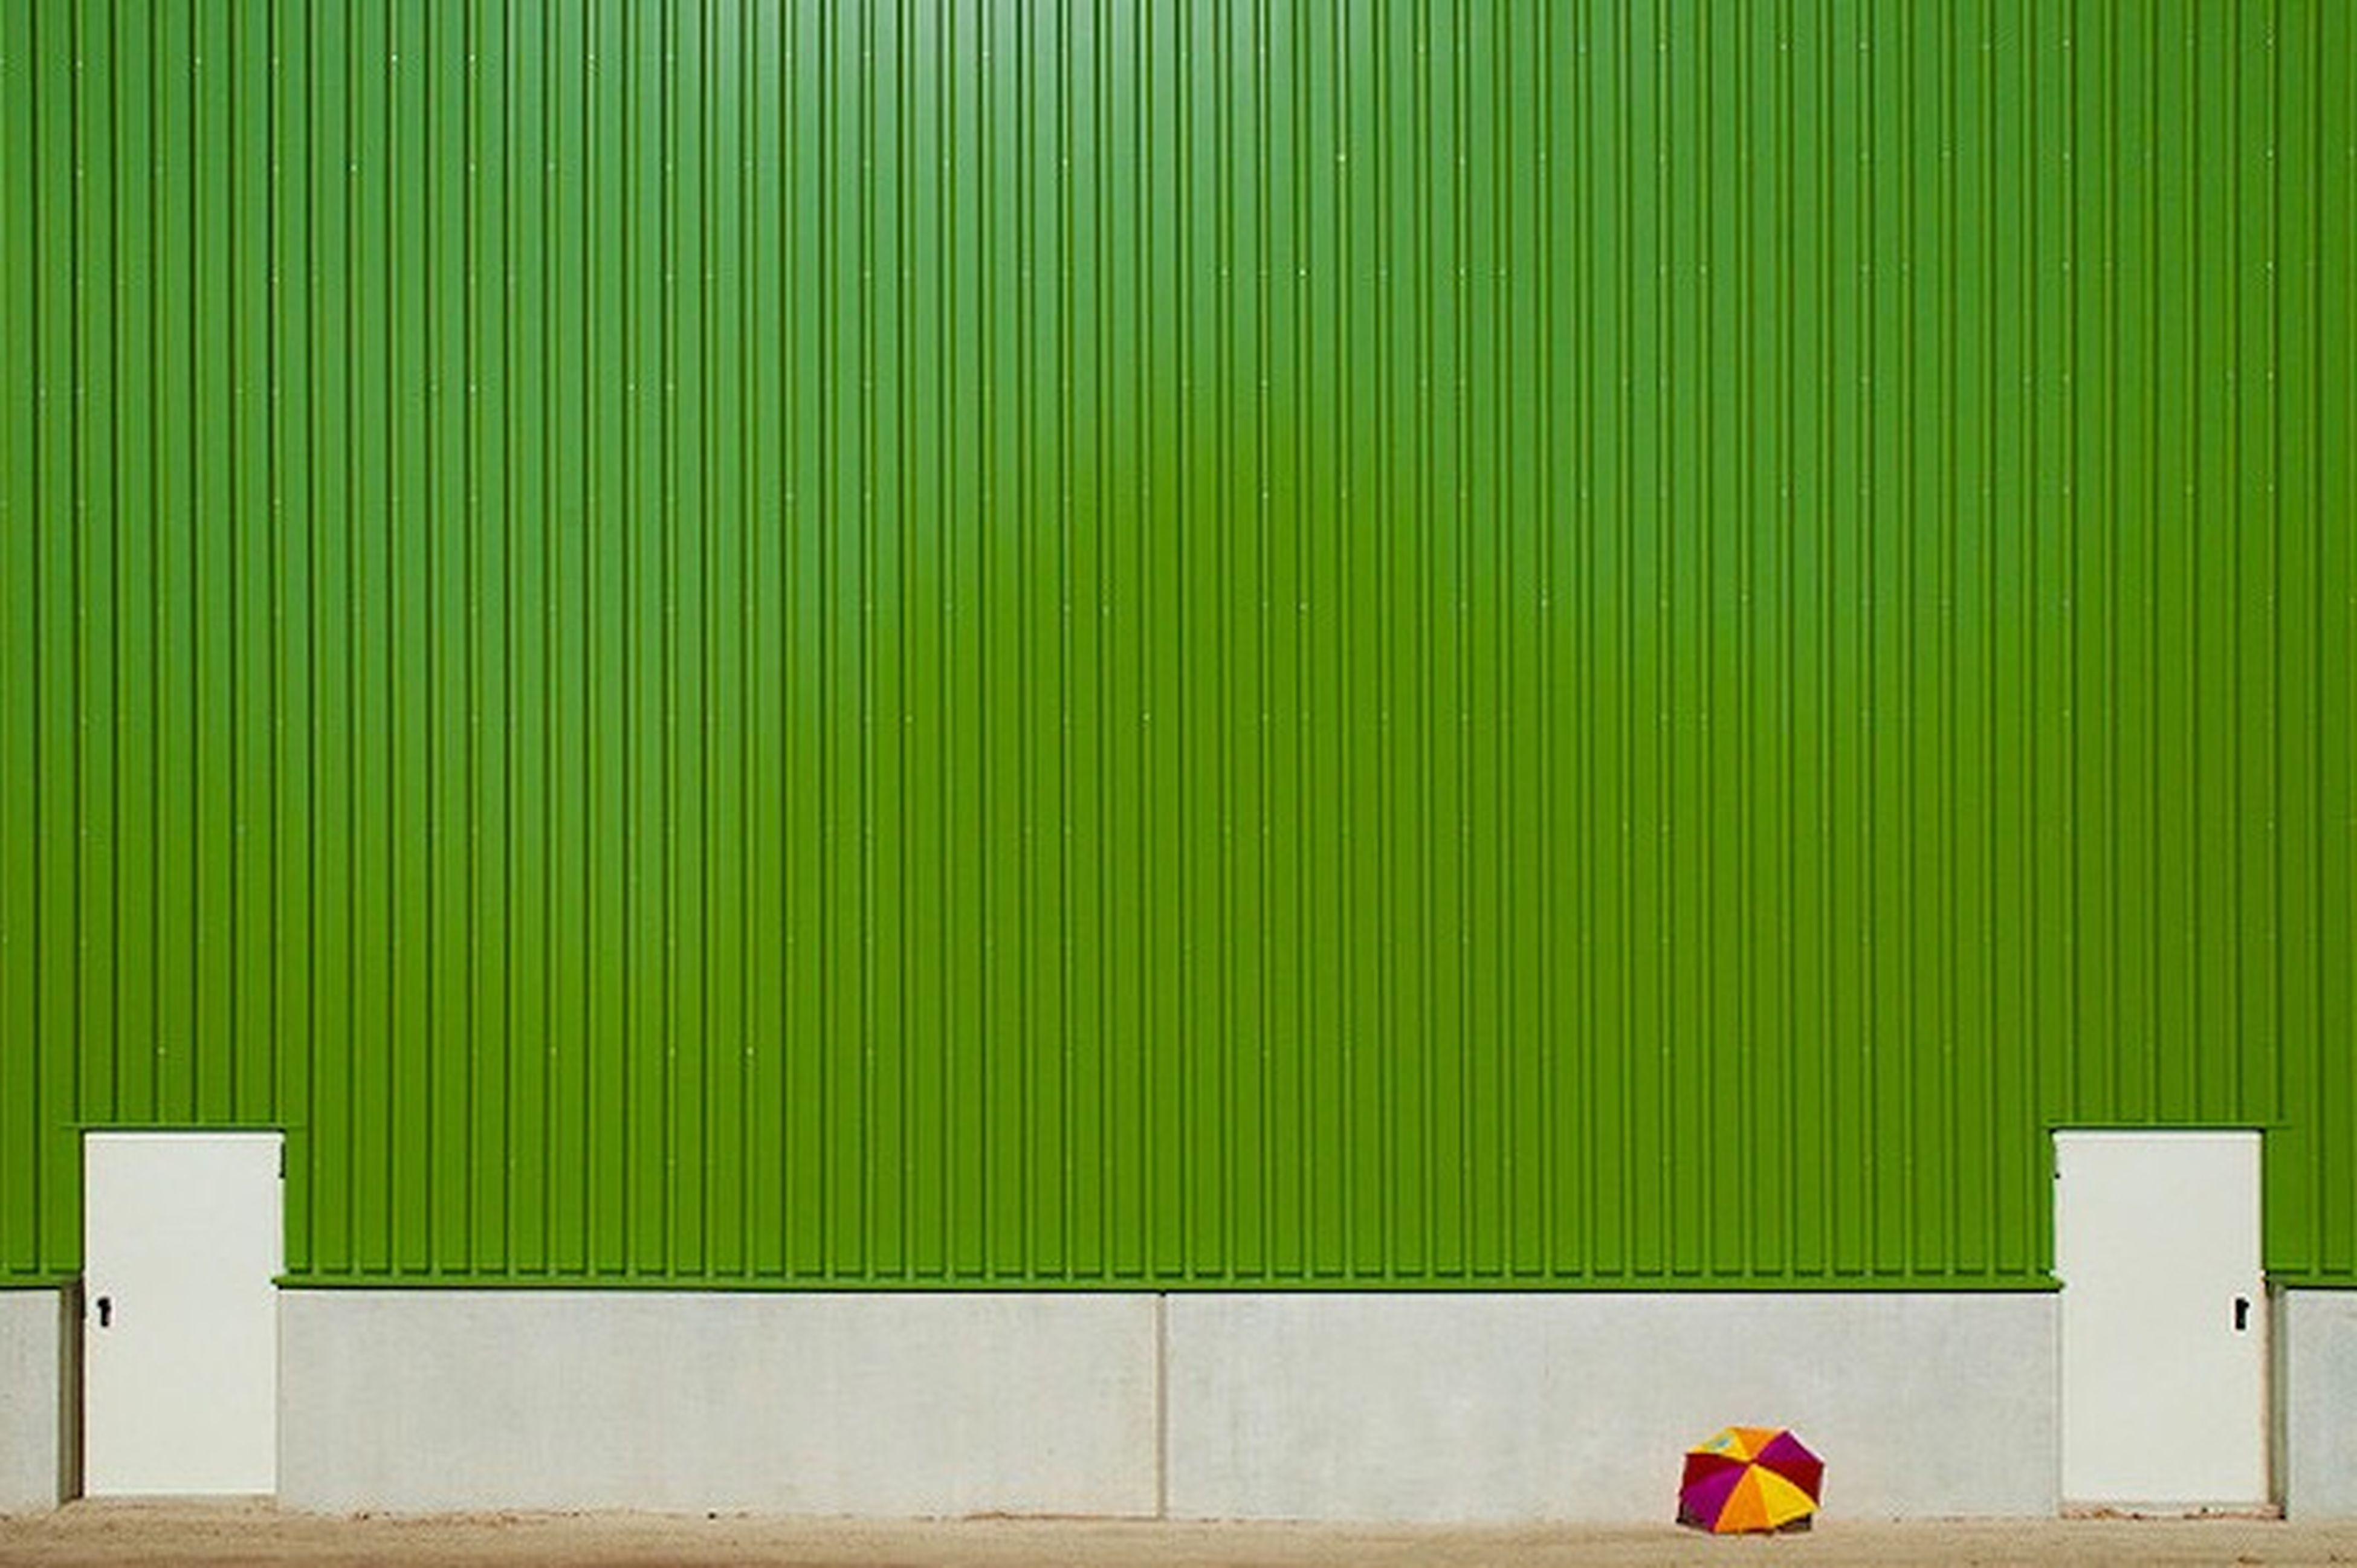 red, green color, pattern, built structure, striped, high angle view, grass, safety, day, in a row, architecture, protection, outdoors, building exterior, wall - building feature, childhood, low section, multi colored